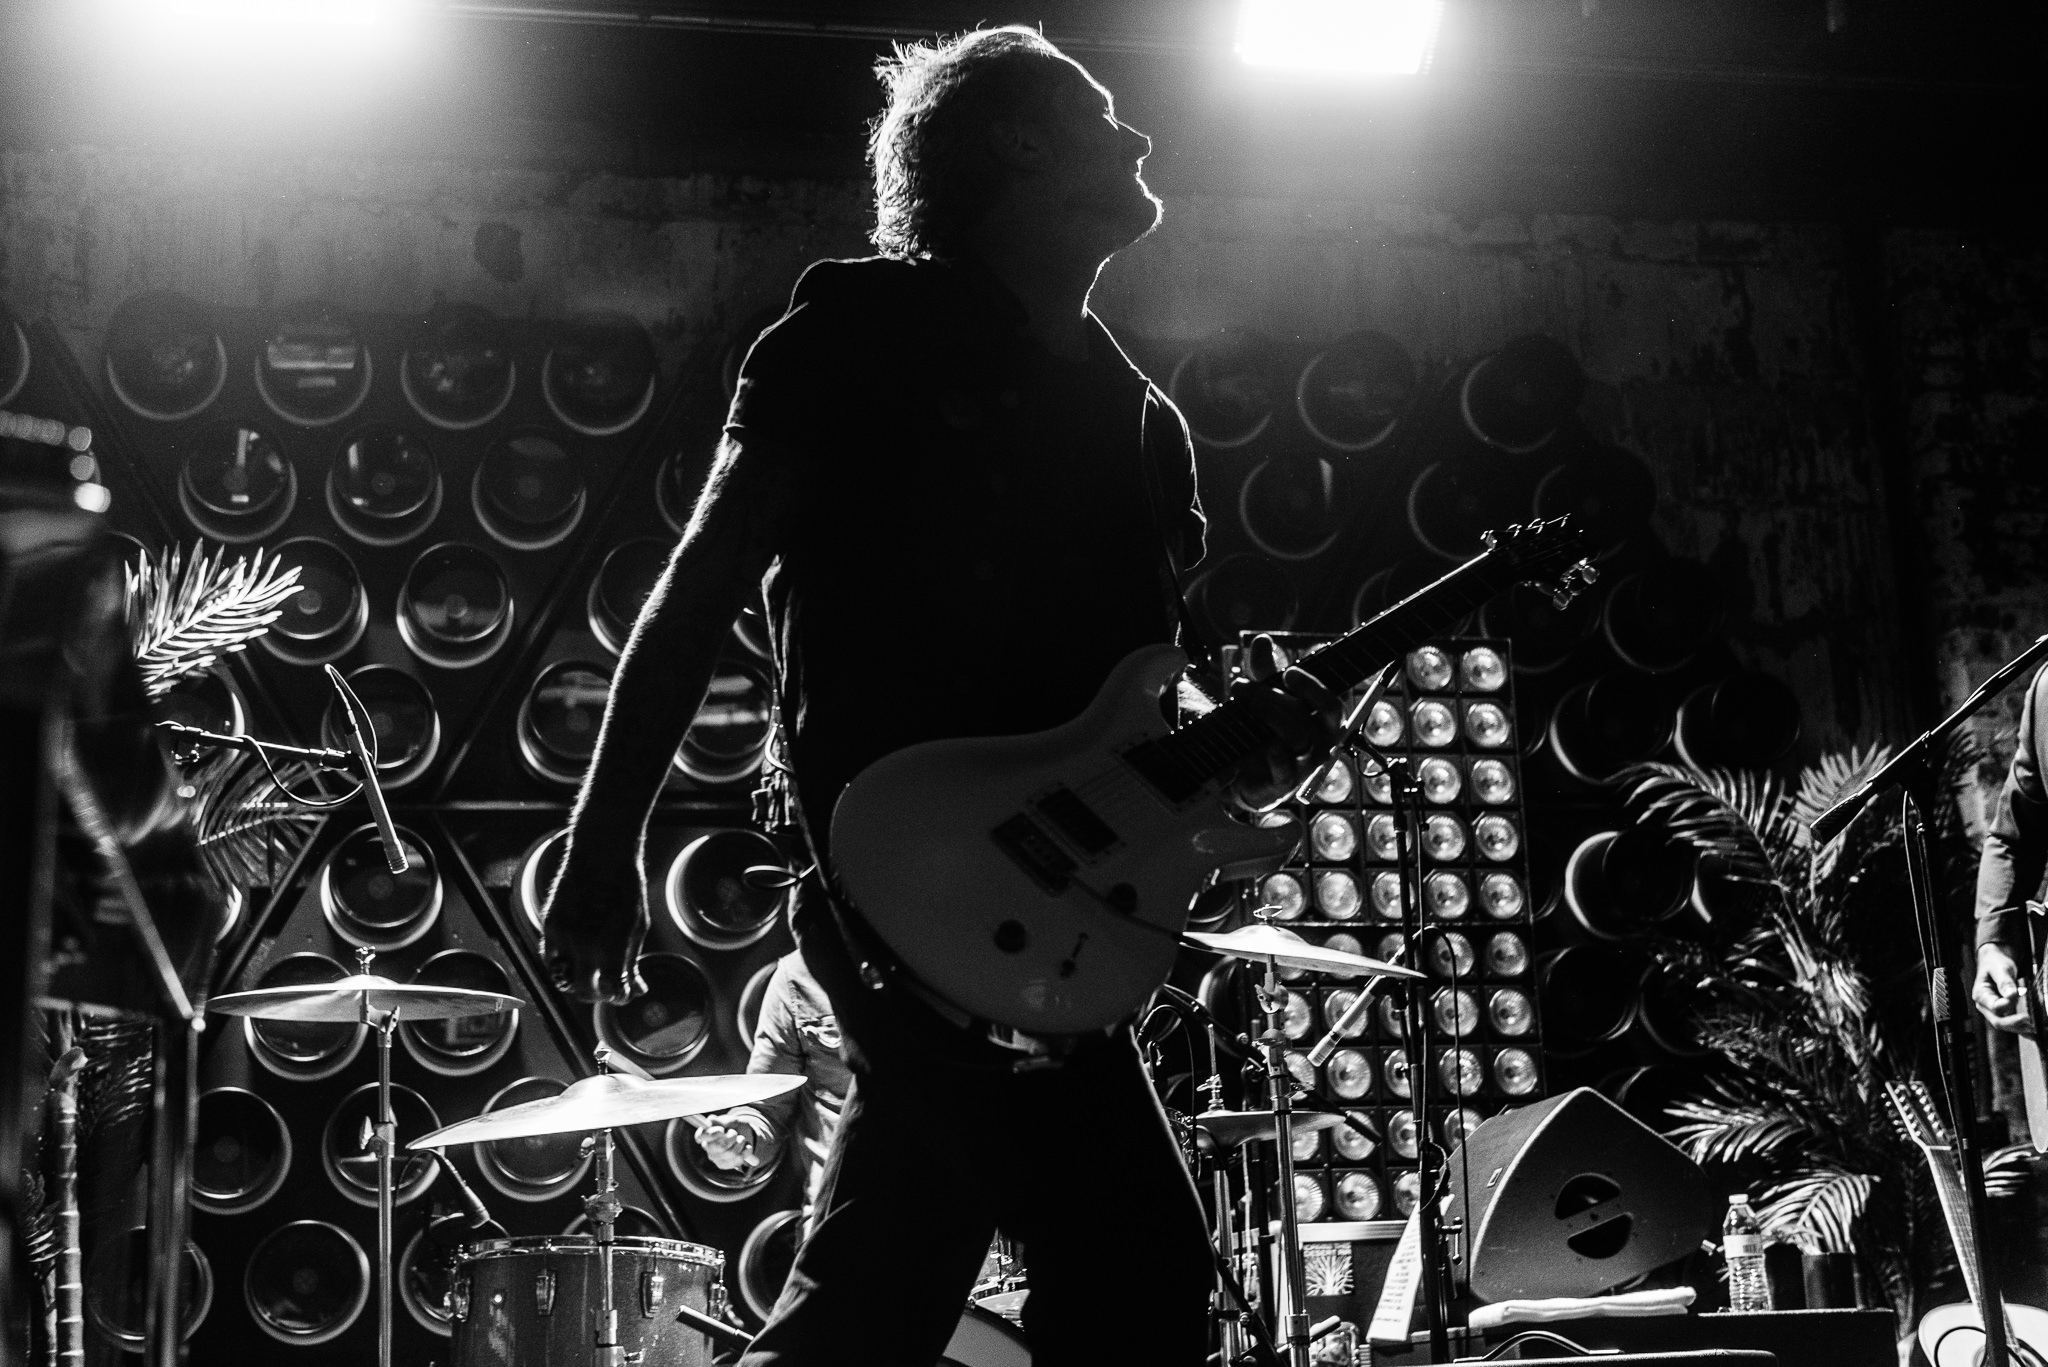 Butch Walker Stars and Scars Photo Asbury Lanes